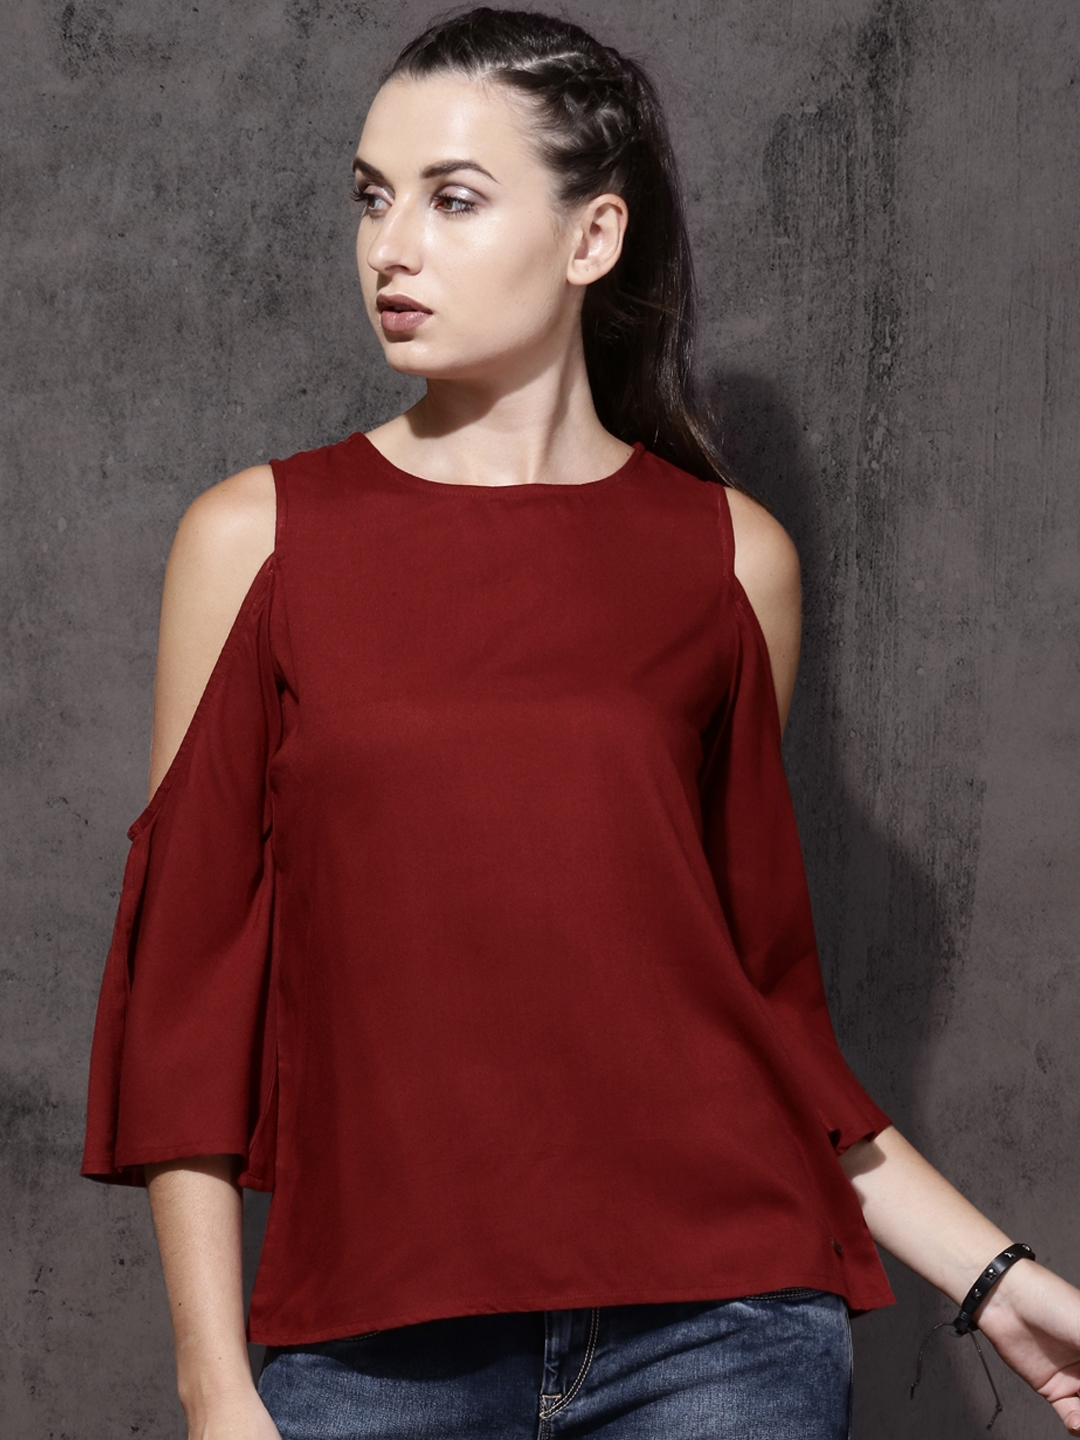 a6b45c01a24a1c Buy Roadster Women Maroon Solid Top - Tops for Women 2423520